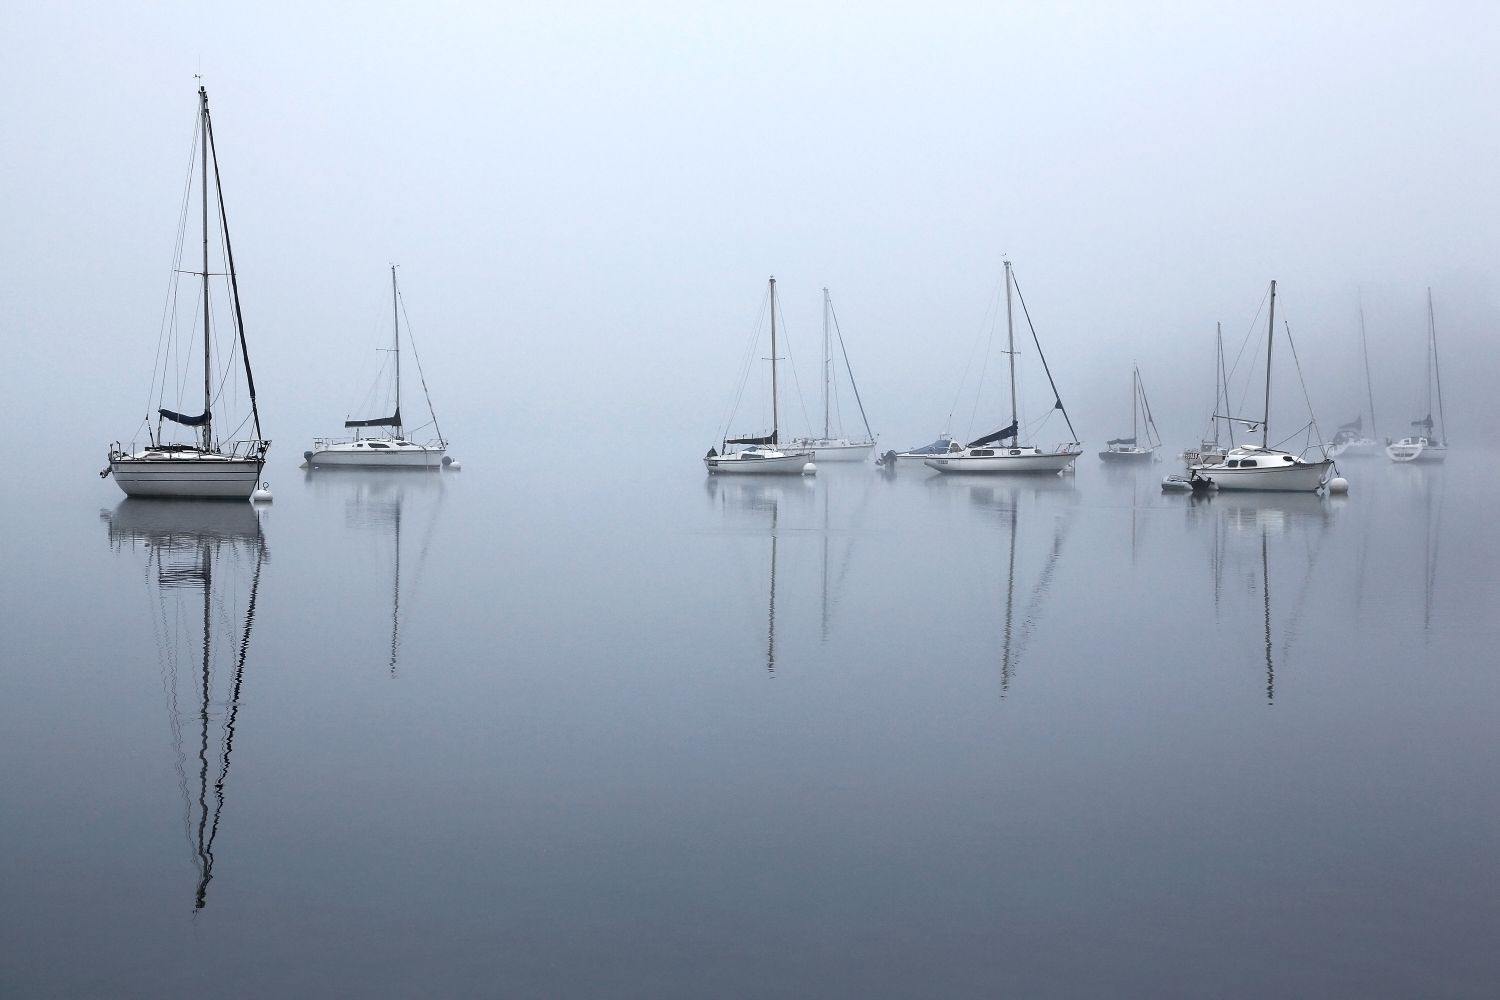 Morning mists over Windermere